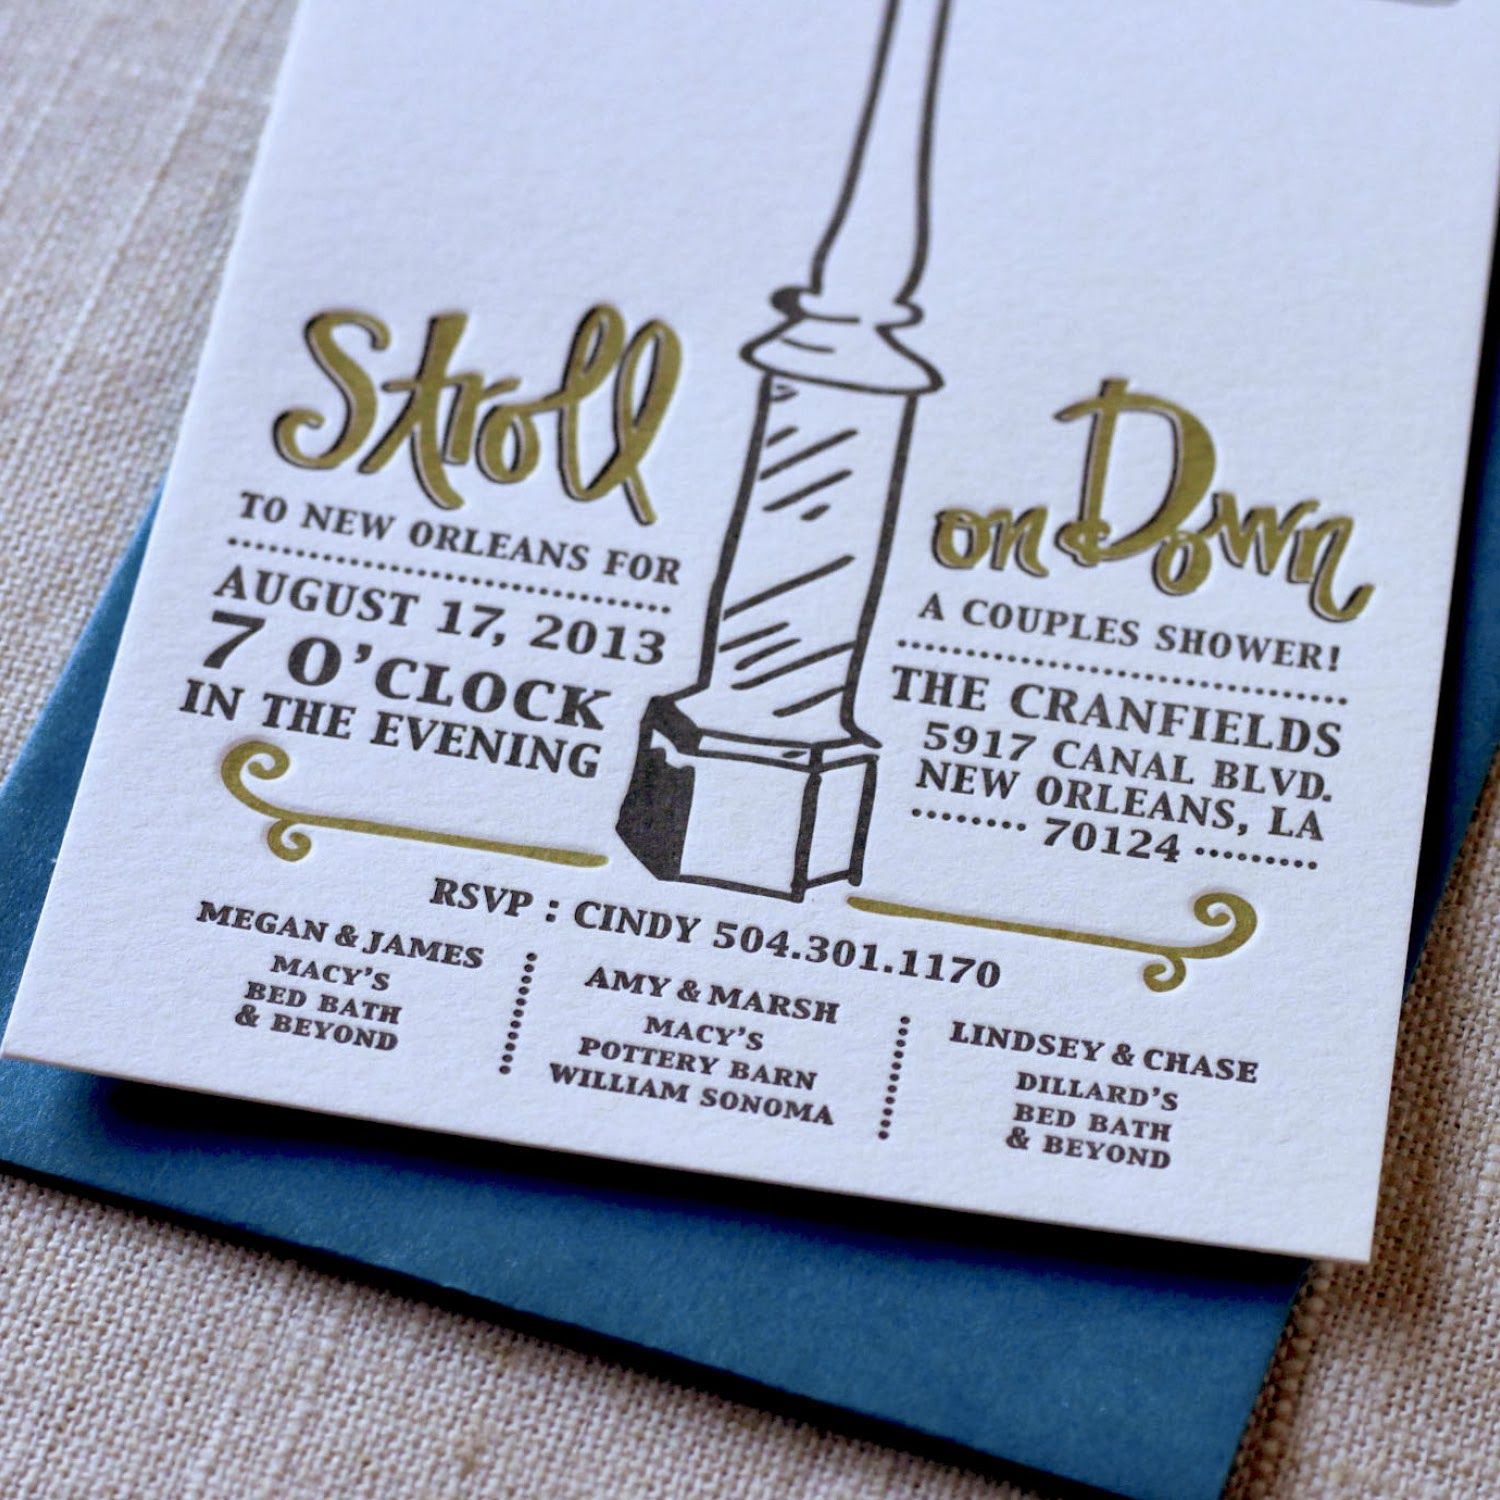 and it appears so for another new orleans wedding - New Orleans Wedding Invitations